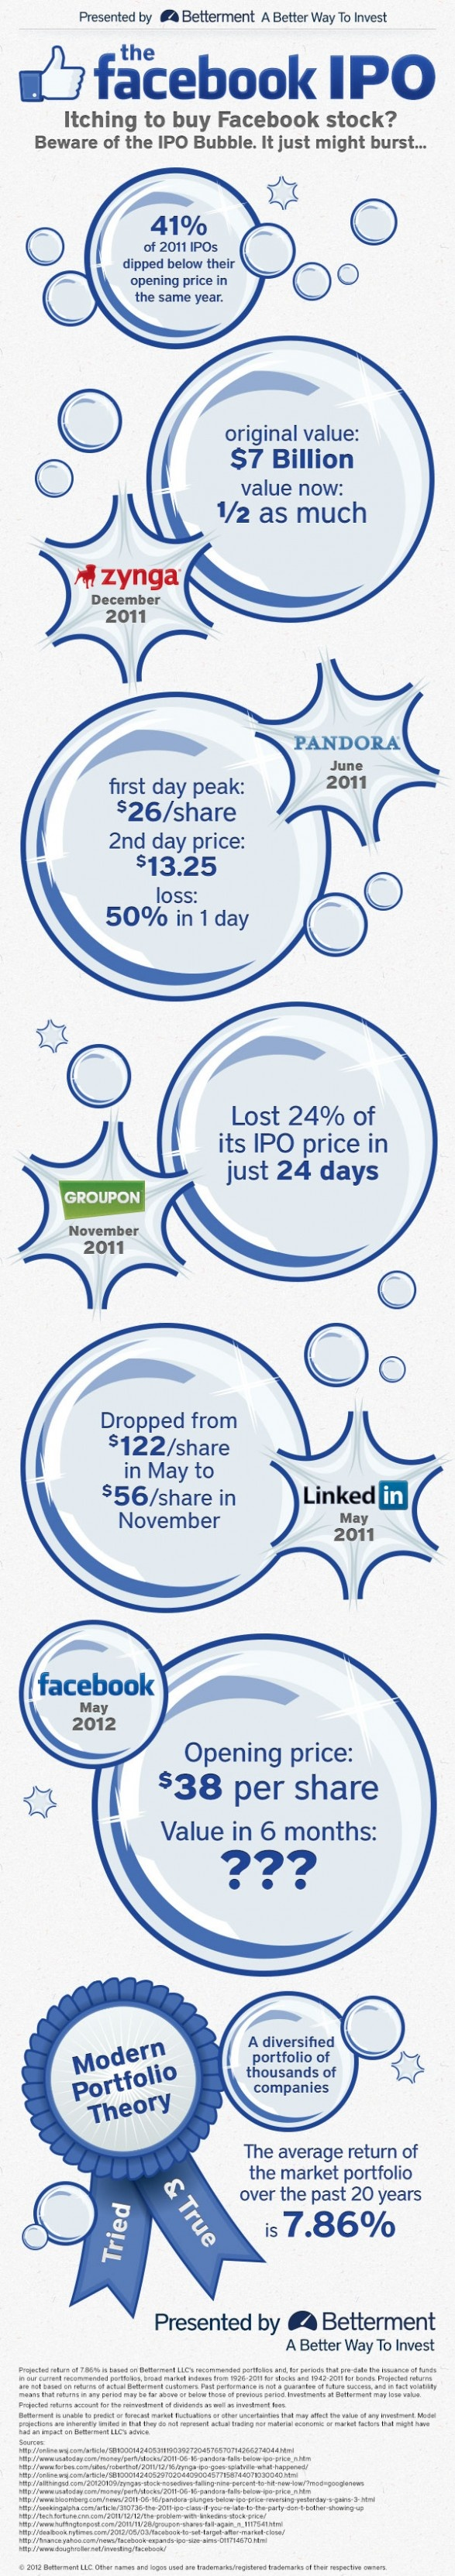 Will the Facebook IPO break technology IPOs? Will today see the social network Facebook share price drop the third day in a row?